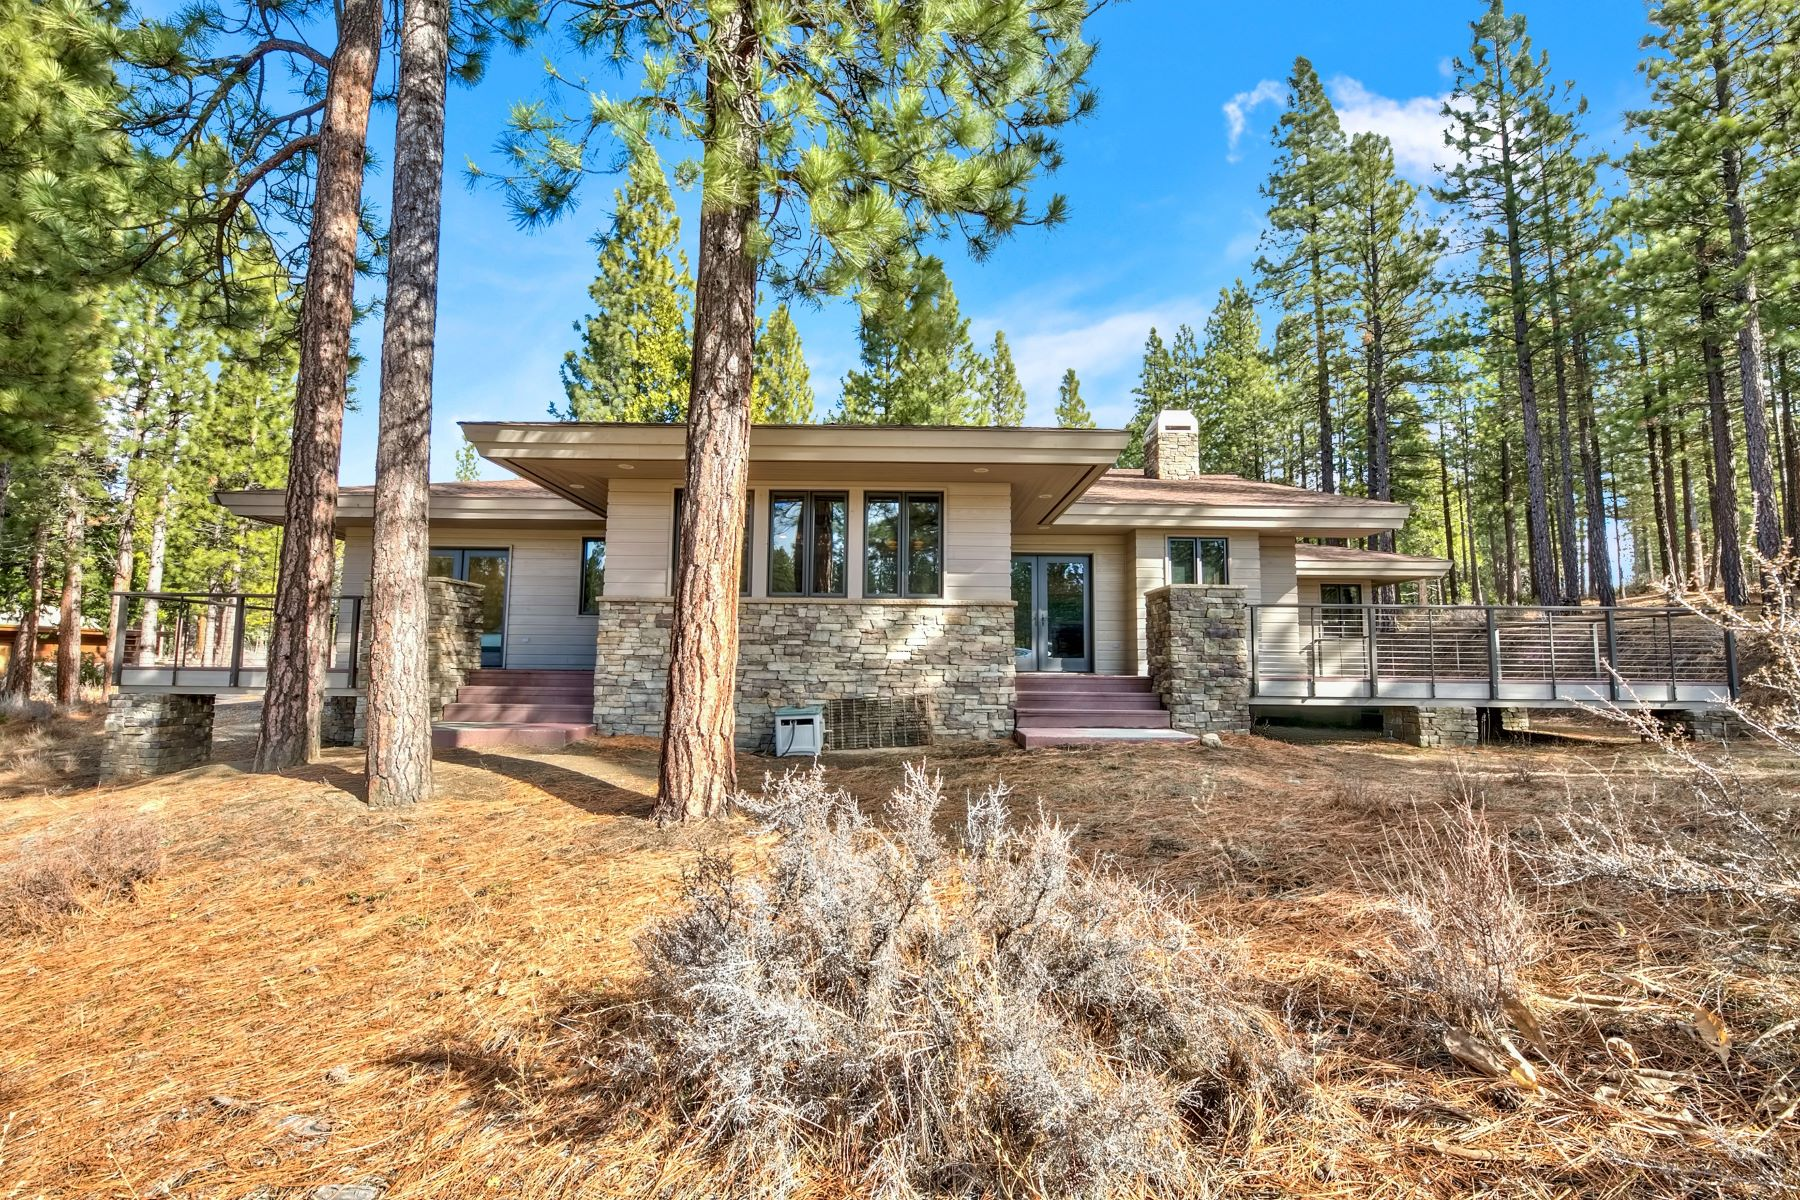 Additional photo for property listing at 272 Red Sky, Portola, CA 96122 272 Red Sky Portola, California 96122 United States